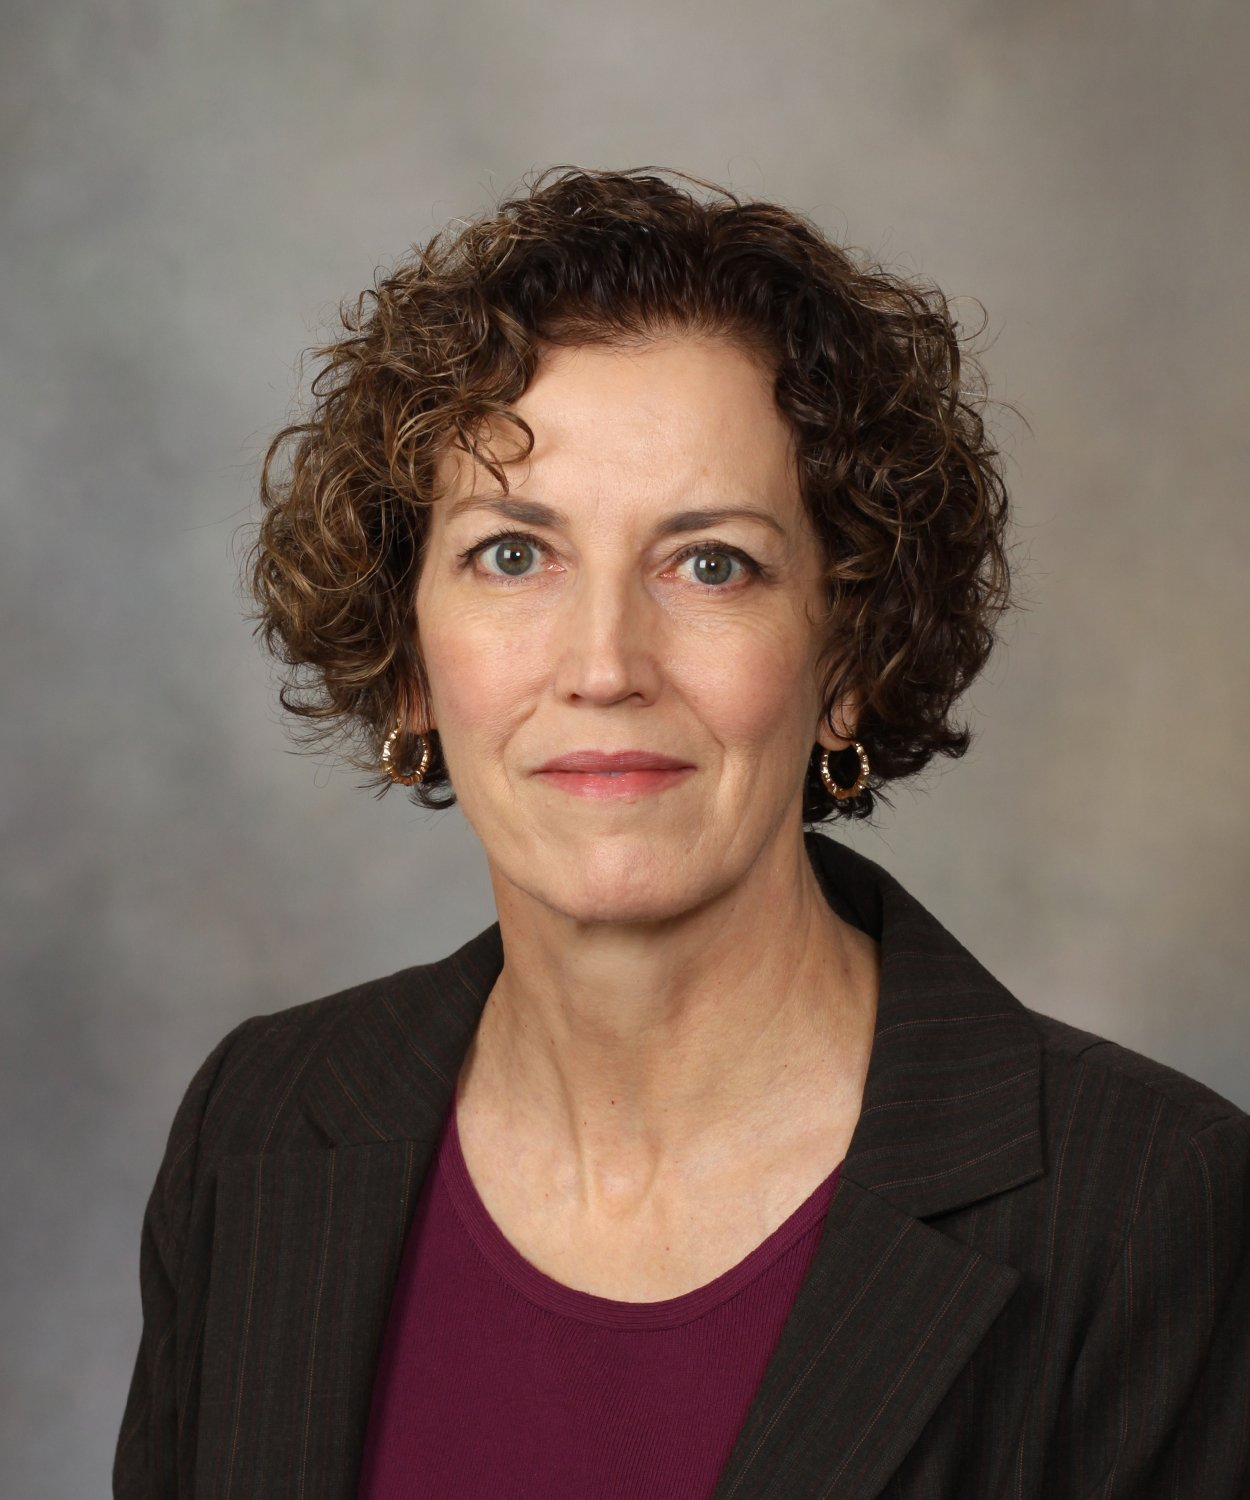 Ann E. Kearns, MD, PhD